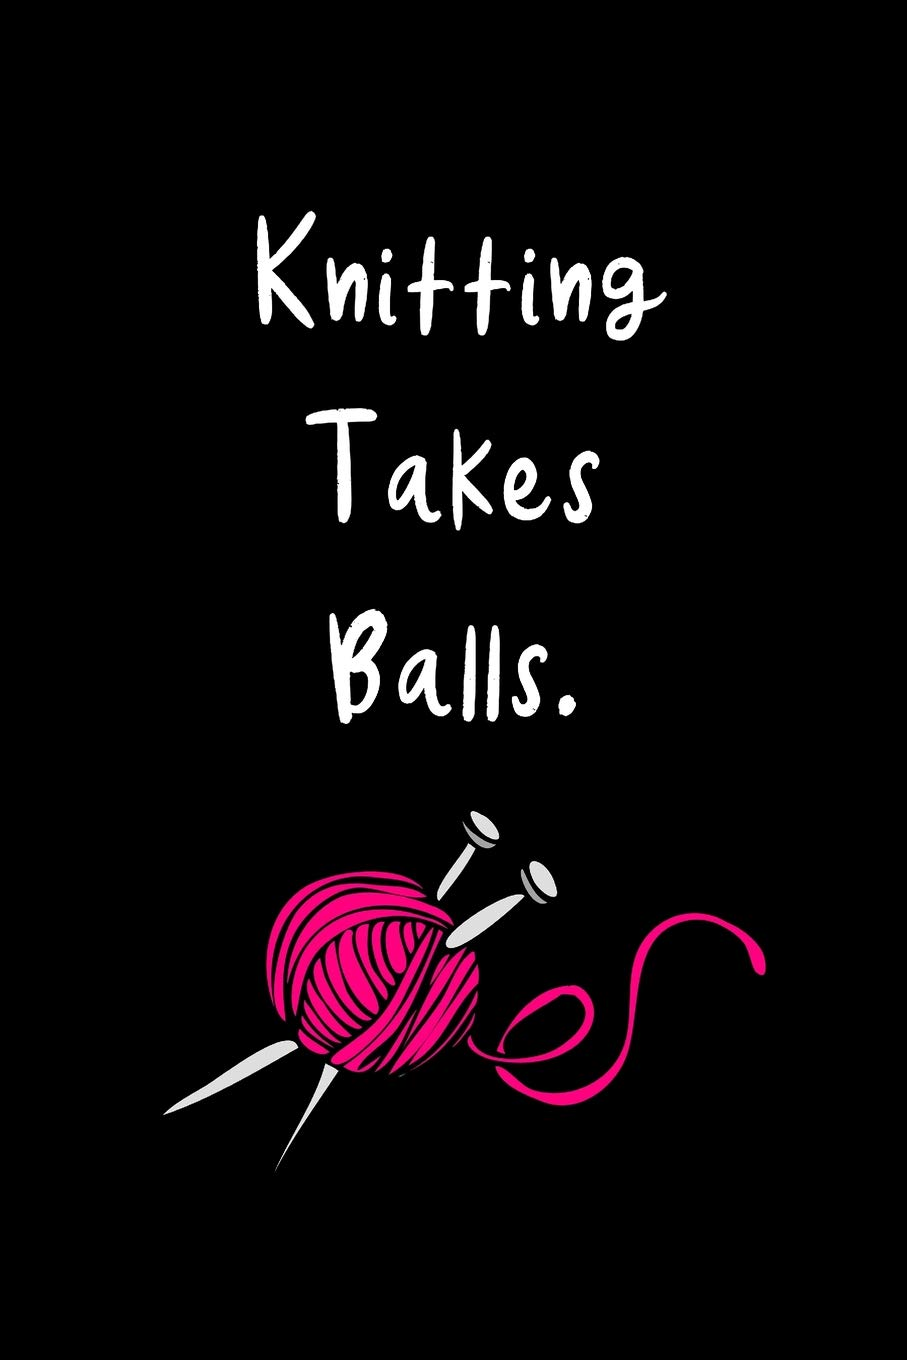 Knitting Takes Balls Funny Hilarious Knitting Gift Ideas For Knitters Who Have Everything Knitting Novelty Gift Small Blank Lined Travel Notebook Publishing Ladymberries 9781097247172 Amazon Com Books